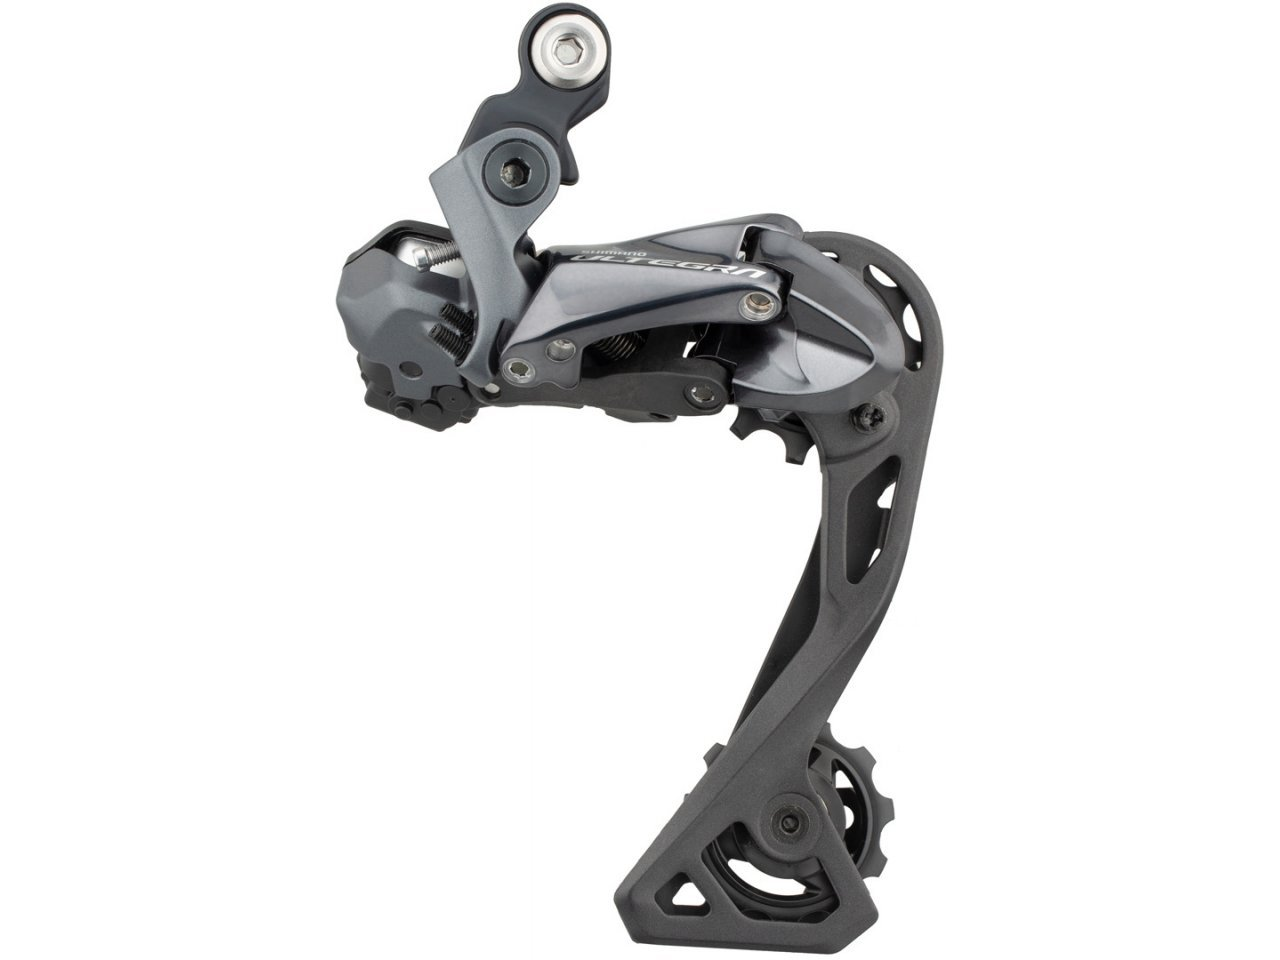 SHIMANO ULTEGRA RD-R8050-SS Di2 SHADOW 11-SPEED SHORT CAGE ROAD REAR DERAILLEUR